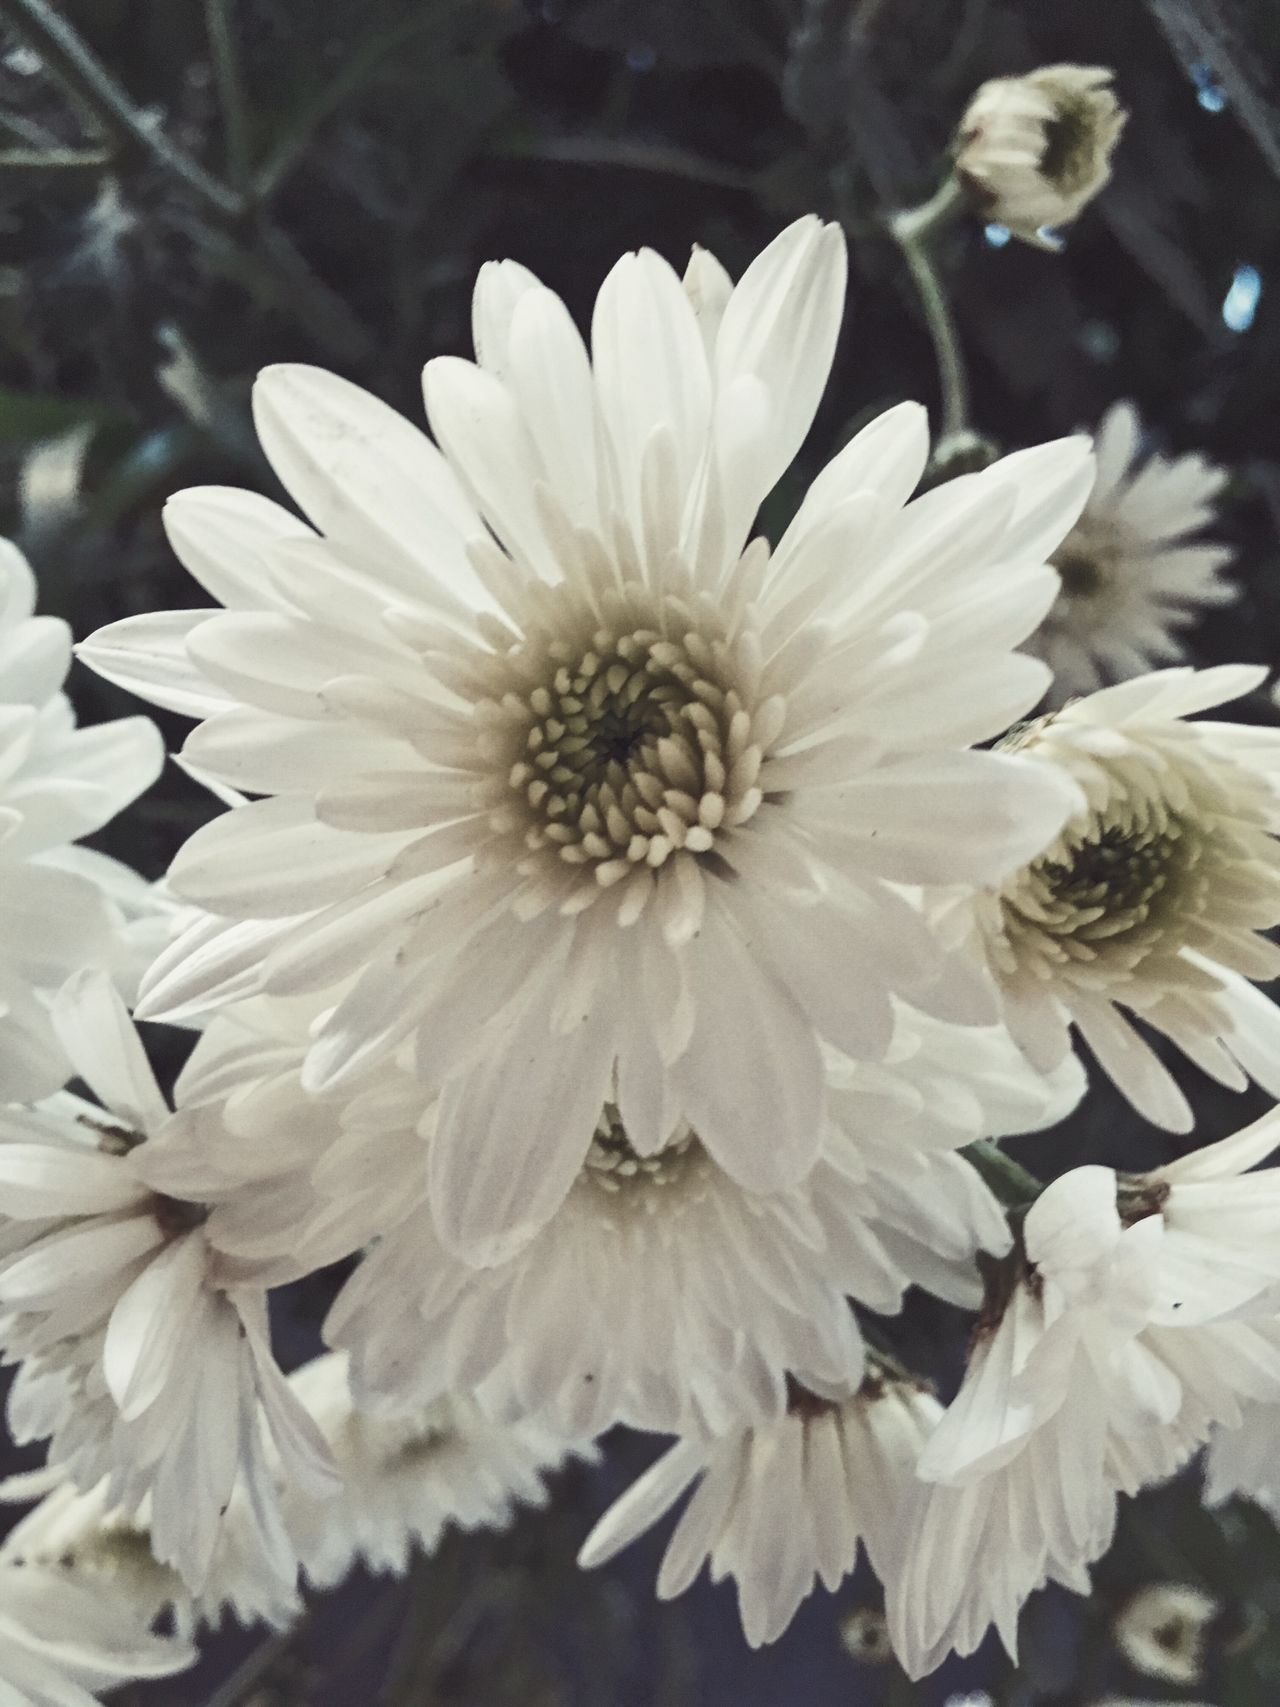 Chrysanthemum IPhone Flower Nature Beauty In Nature Petal Fragility Freshness Flower Head Growth Blooming Close-up Plant No People Outdoors Day